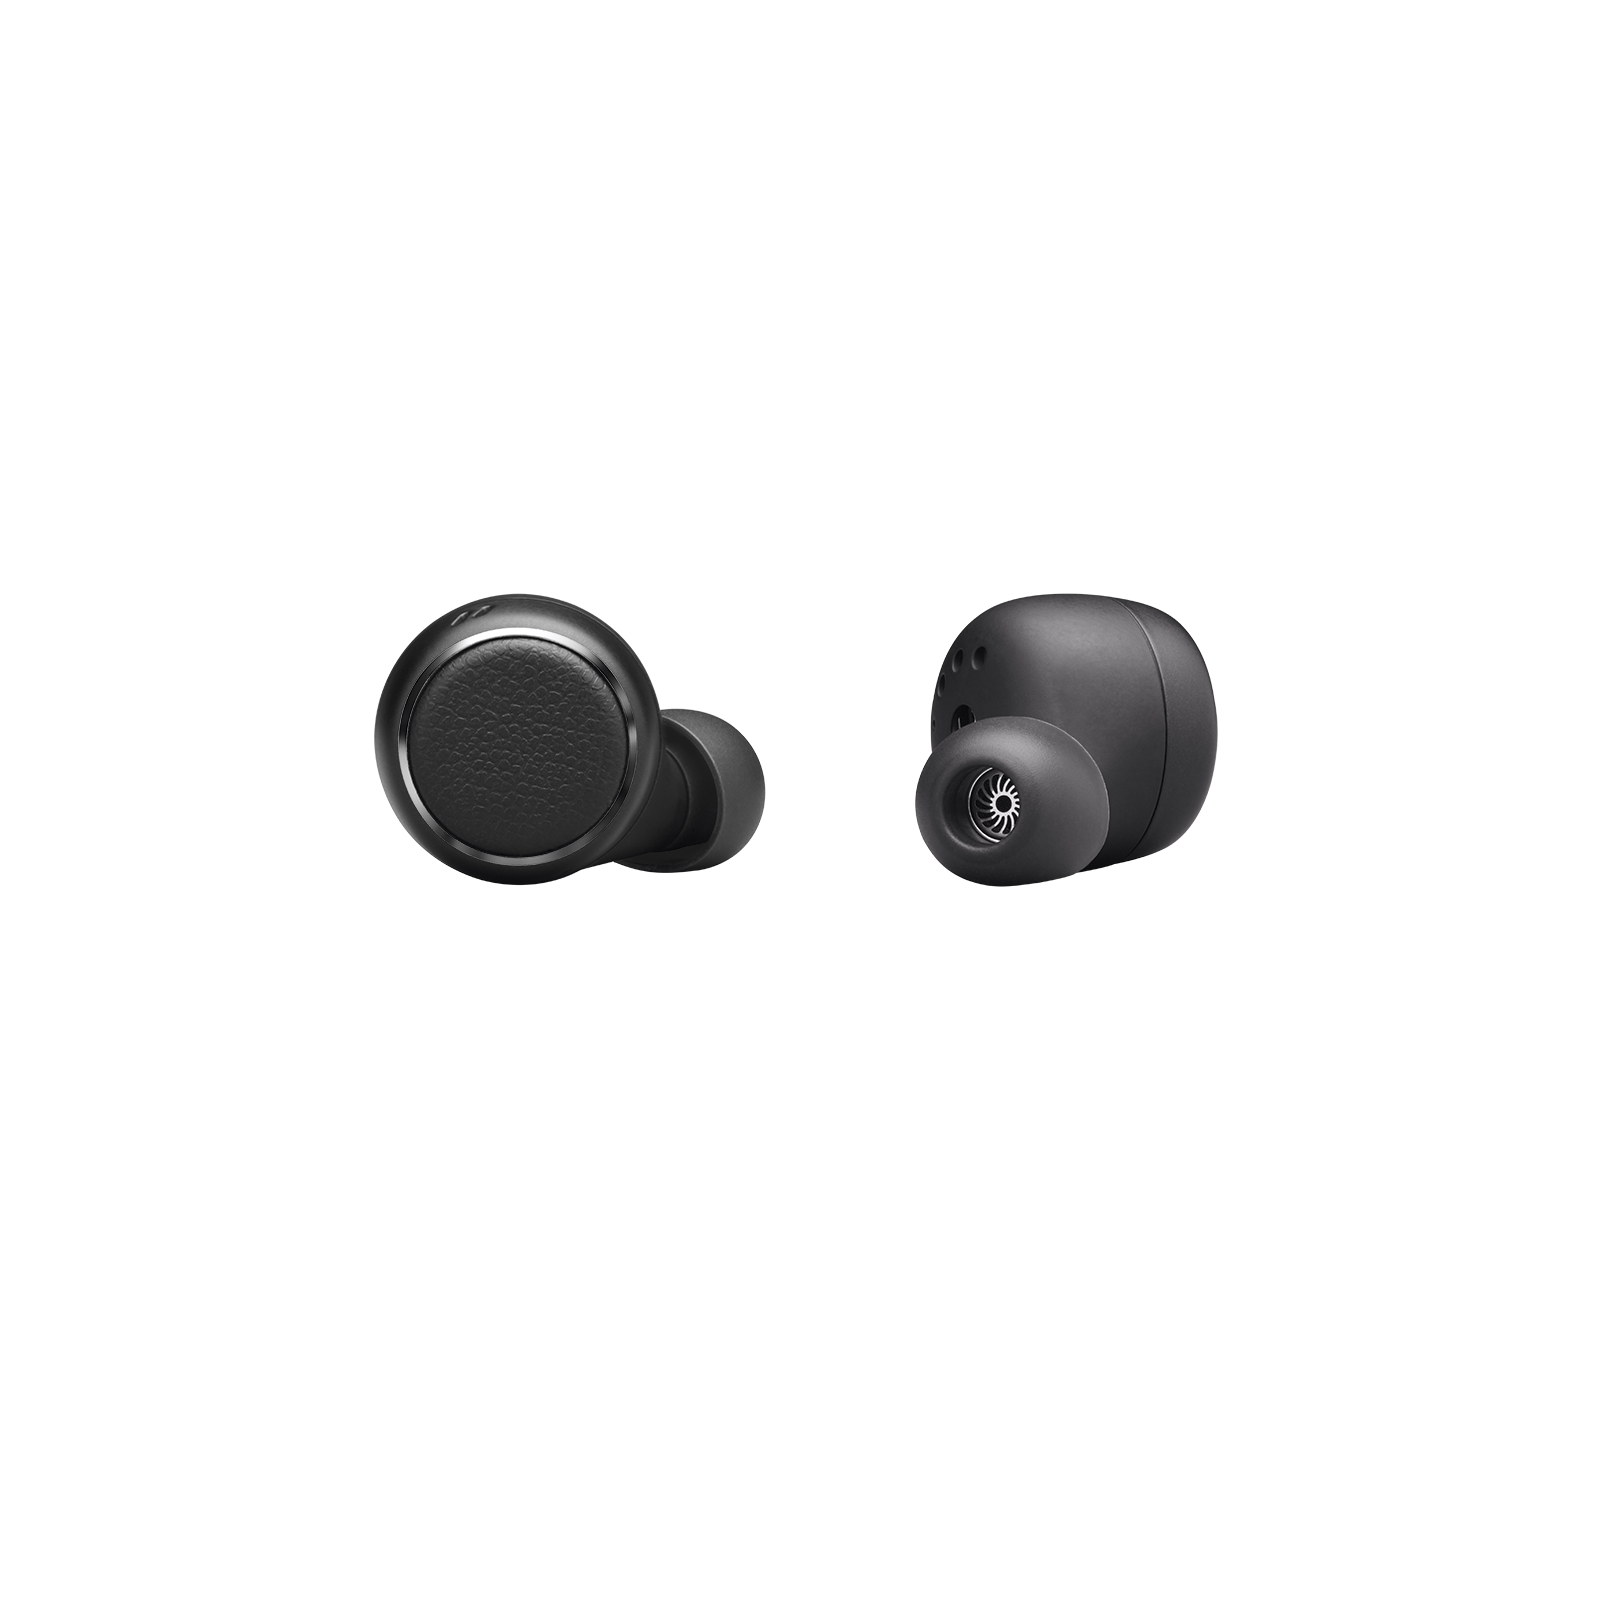 Harman Kardon FLY TWS - Black - True Wireless in-ear headphones - Detailshot 3